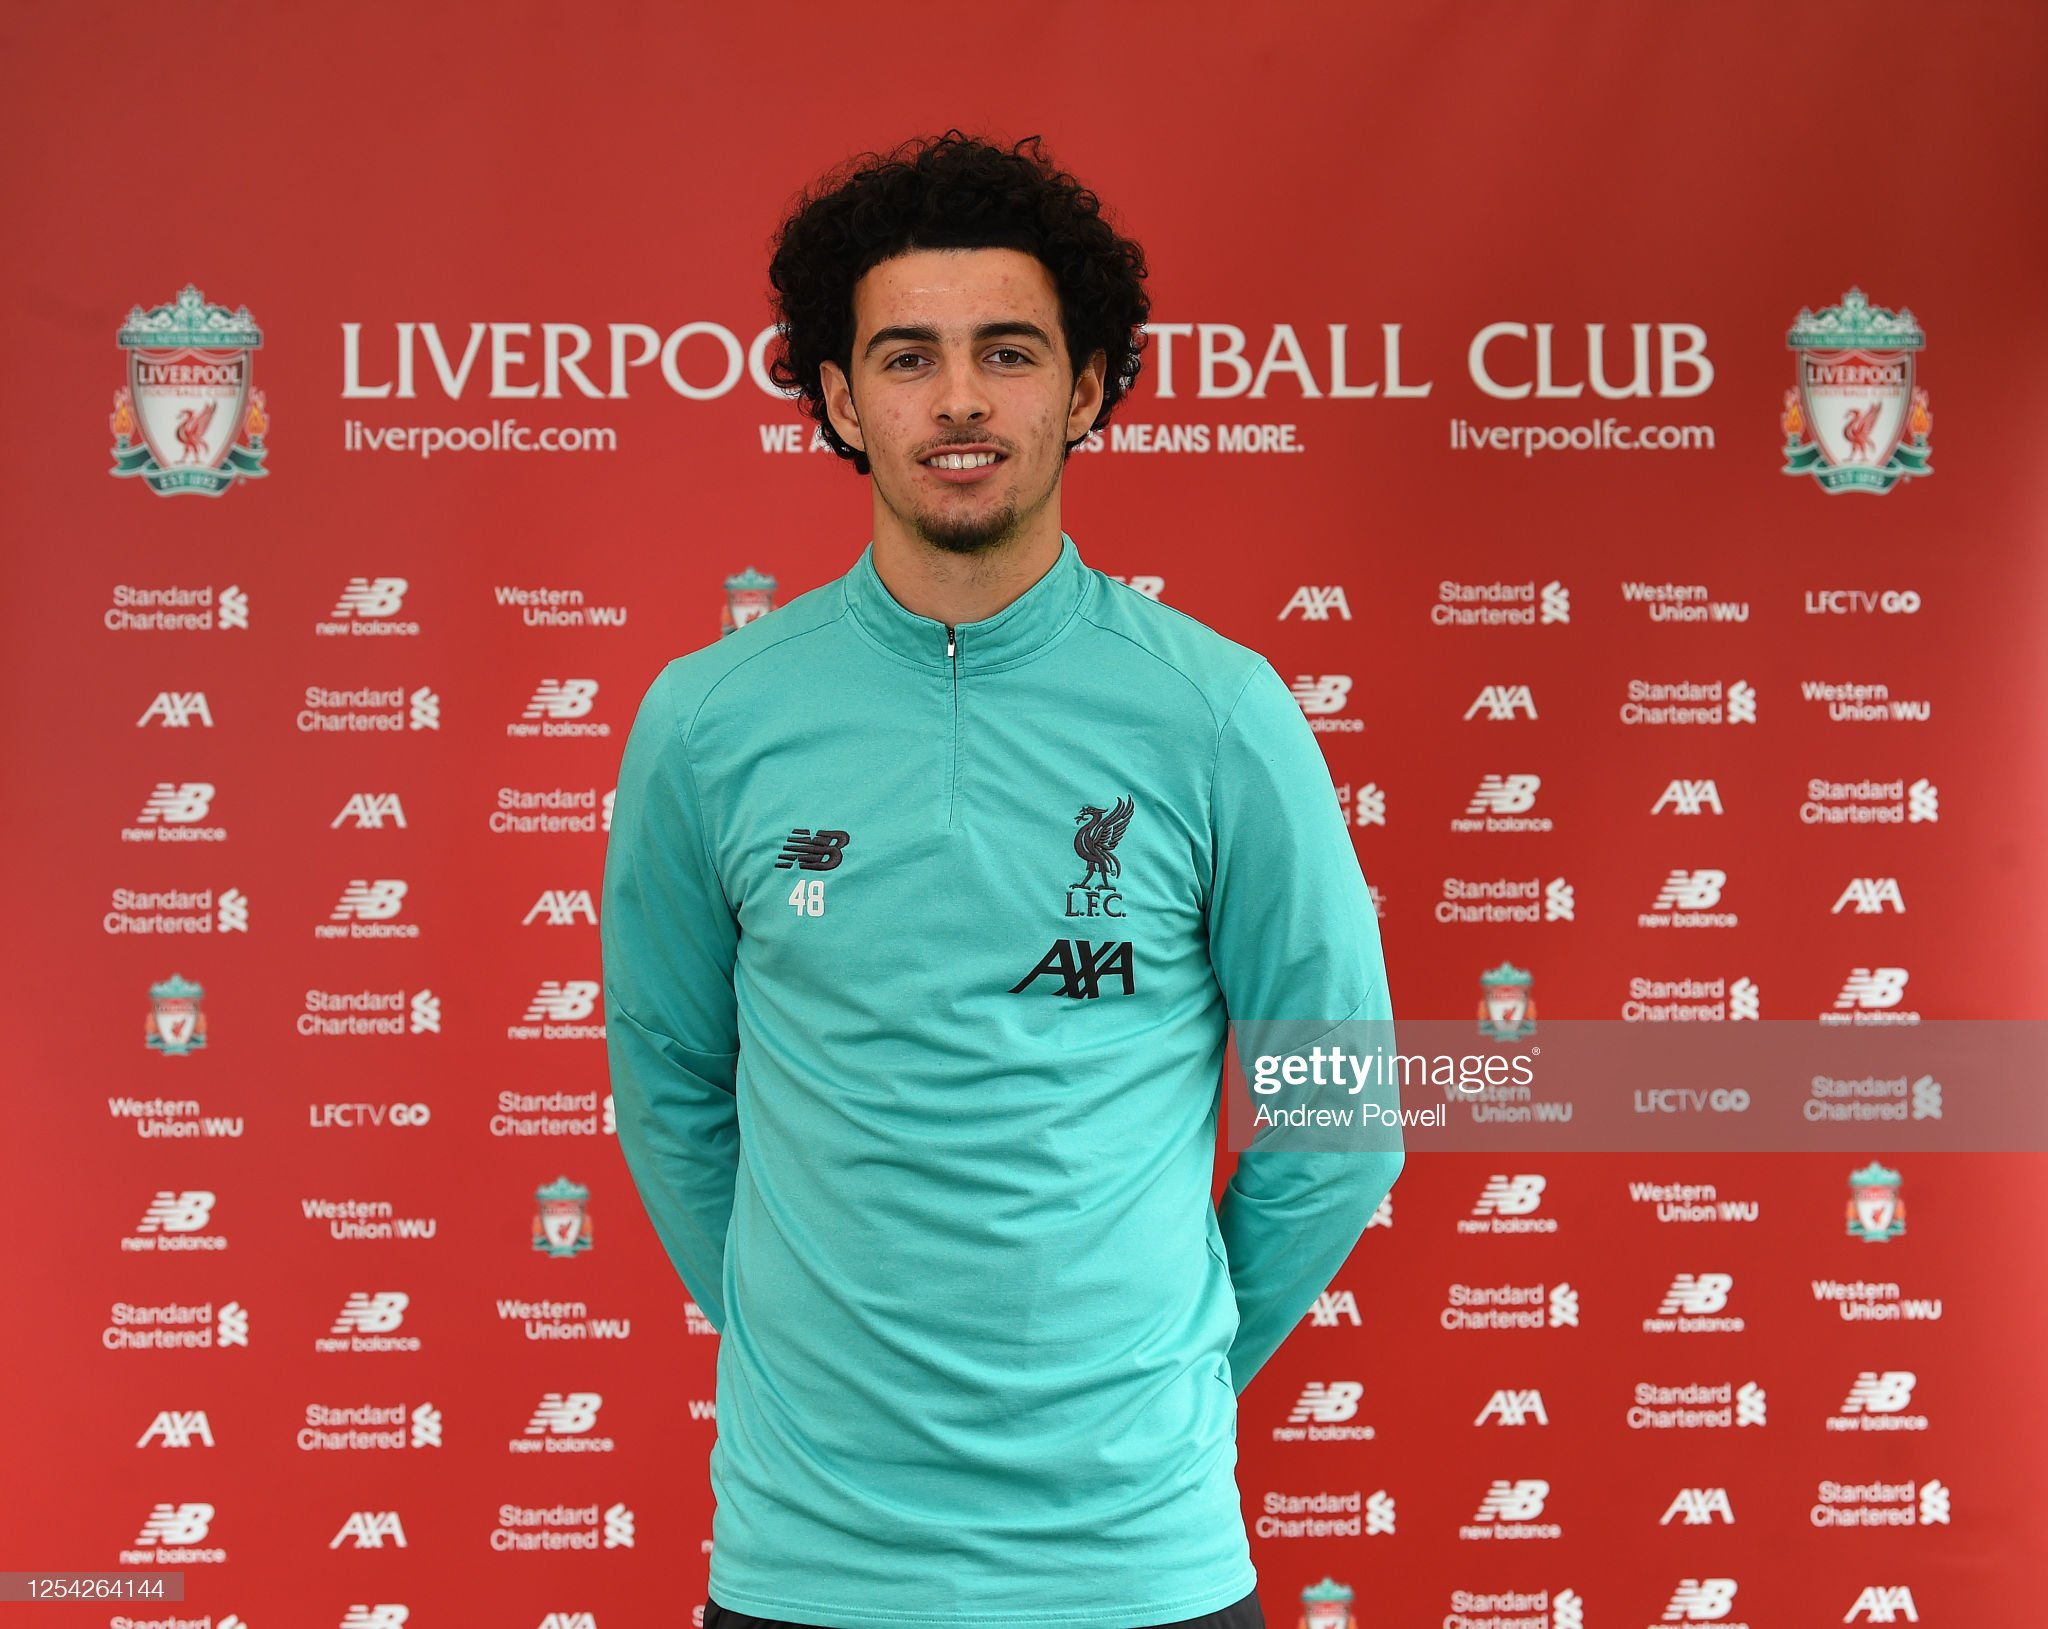 https://media.gettyimages.com/photos/curtis-jones-of-liverpool-after-signing-an-contract-extension-at-picture-id1254264144?s=2048x2048